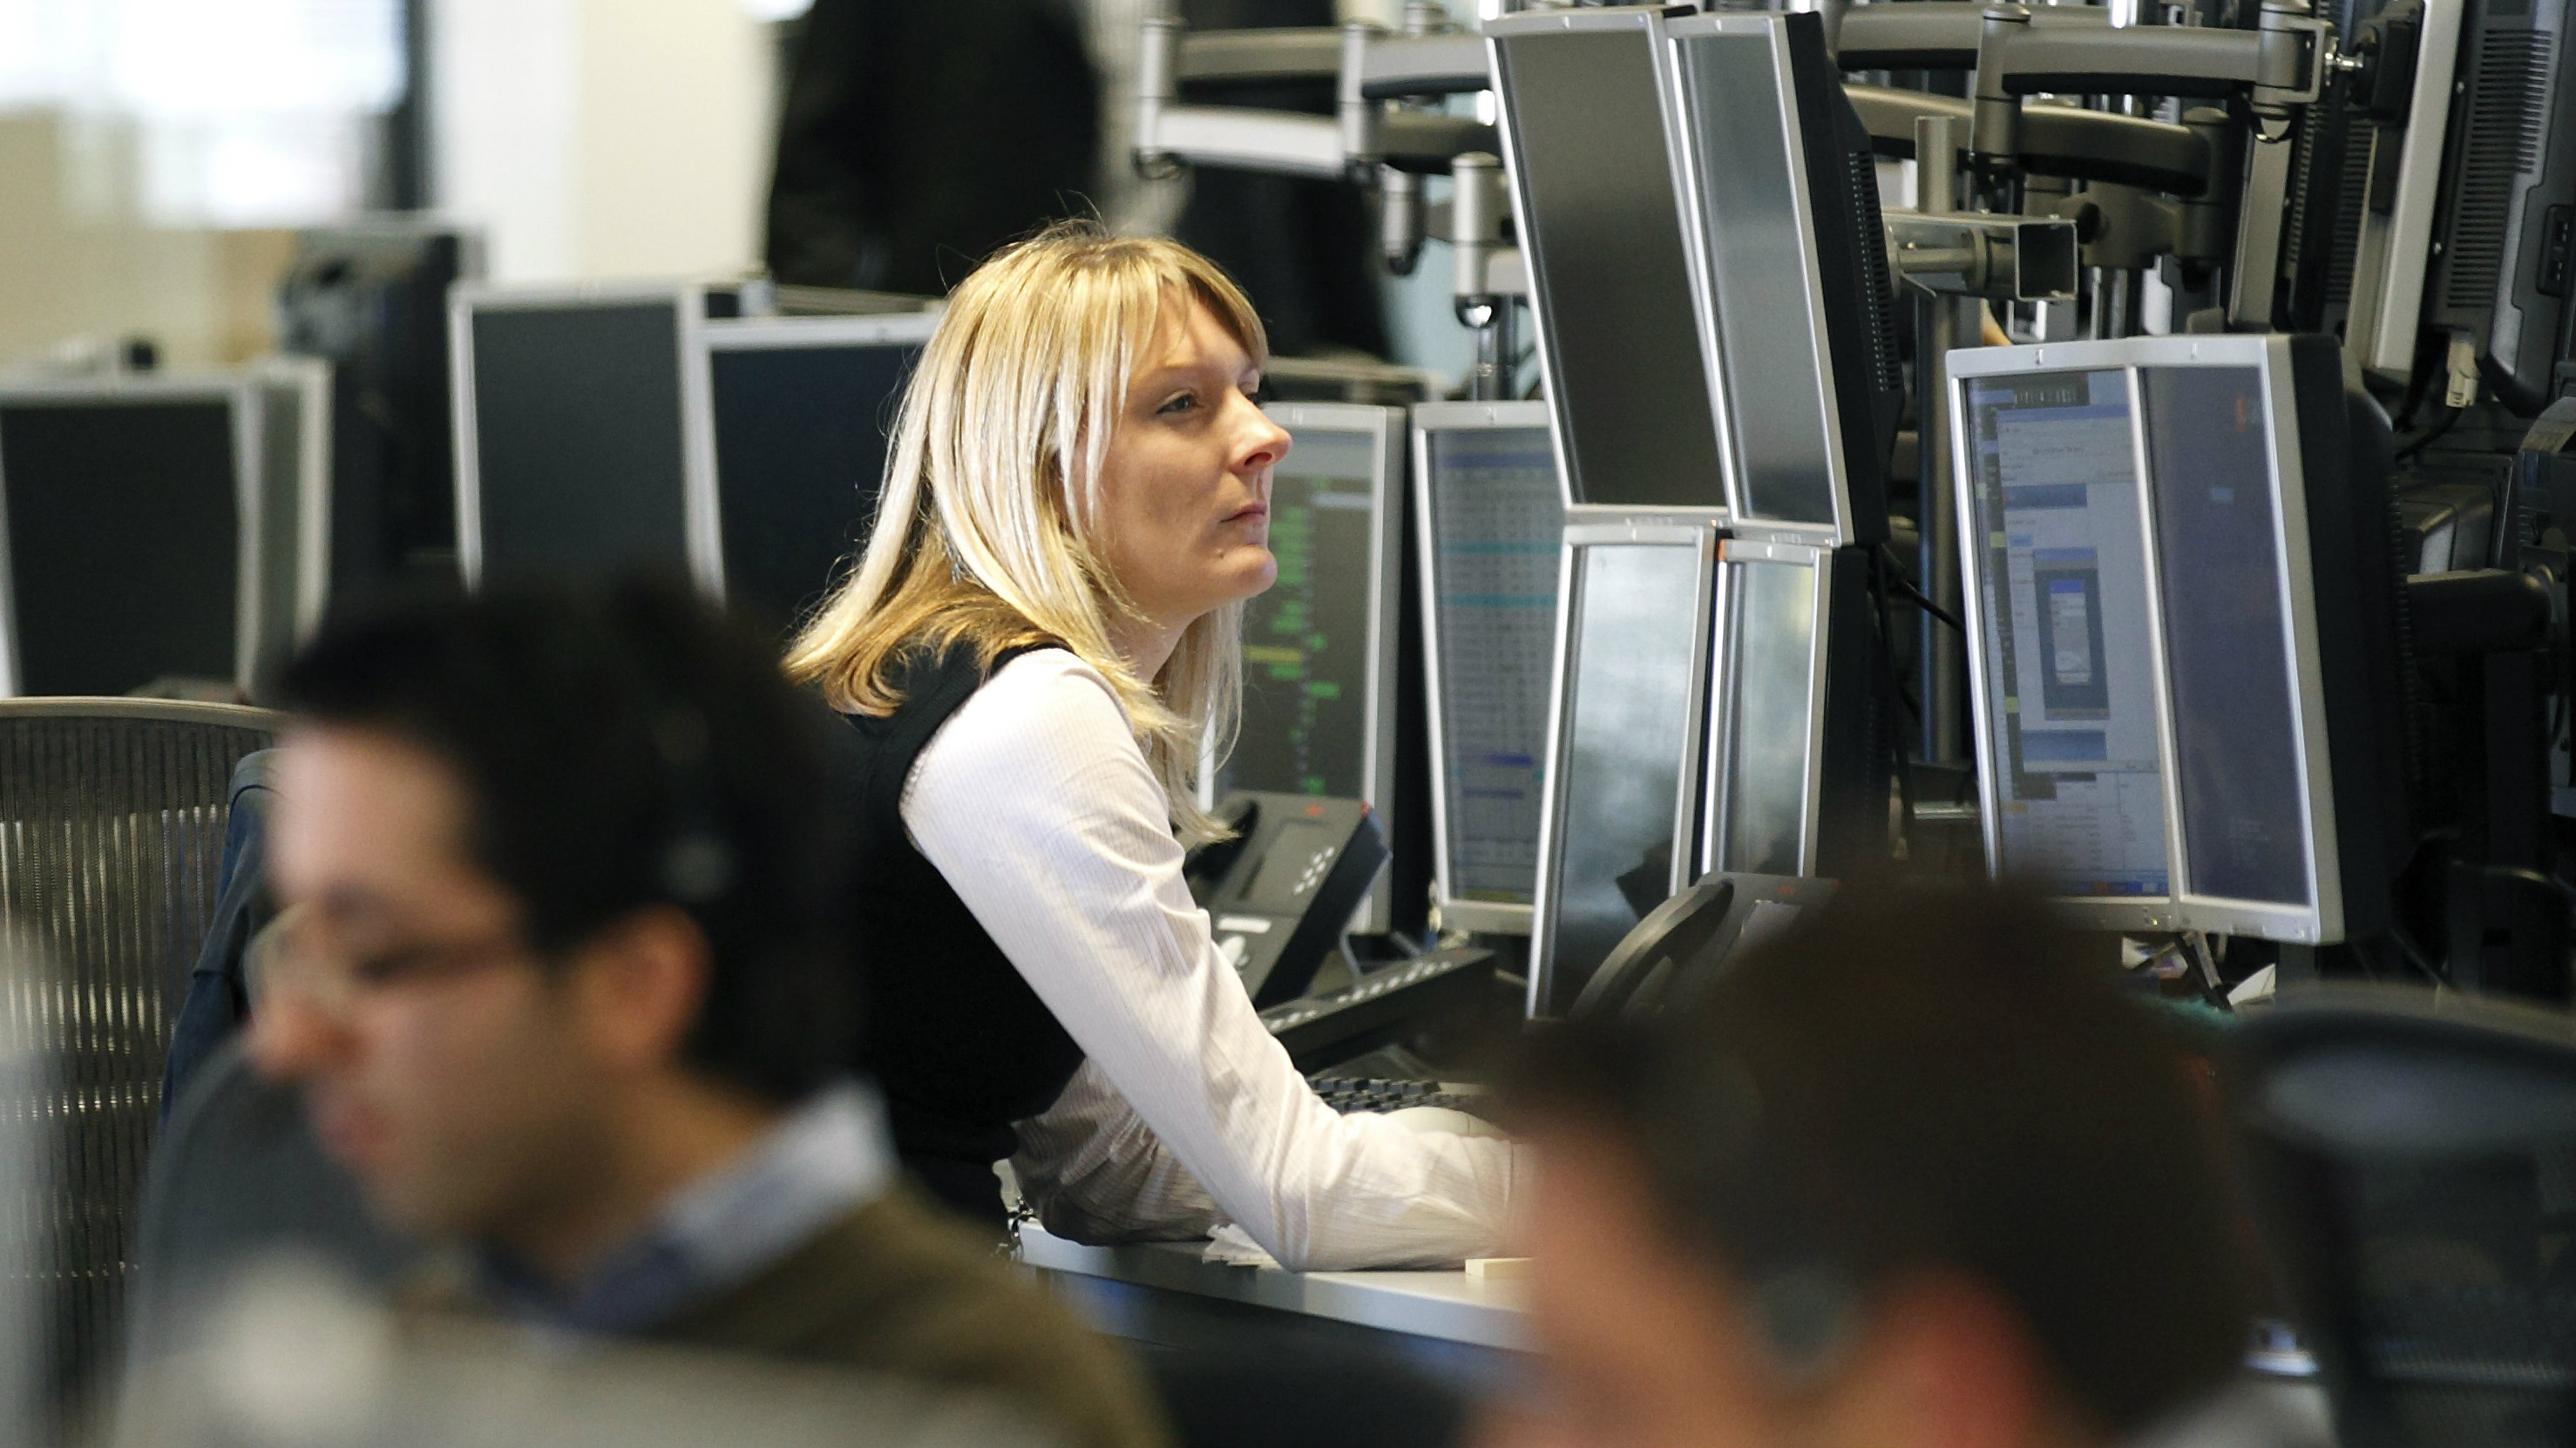 A woman monitors her screens at a dealing floor in London